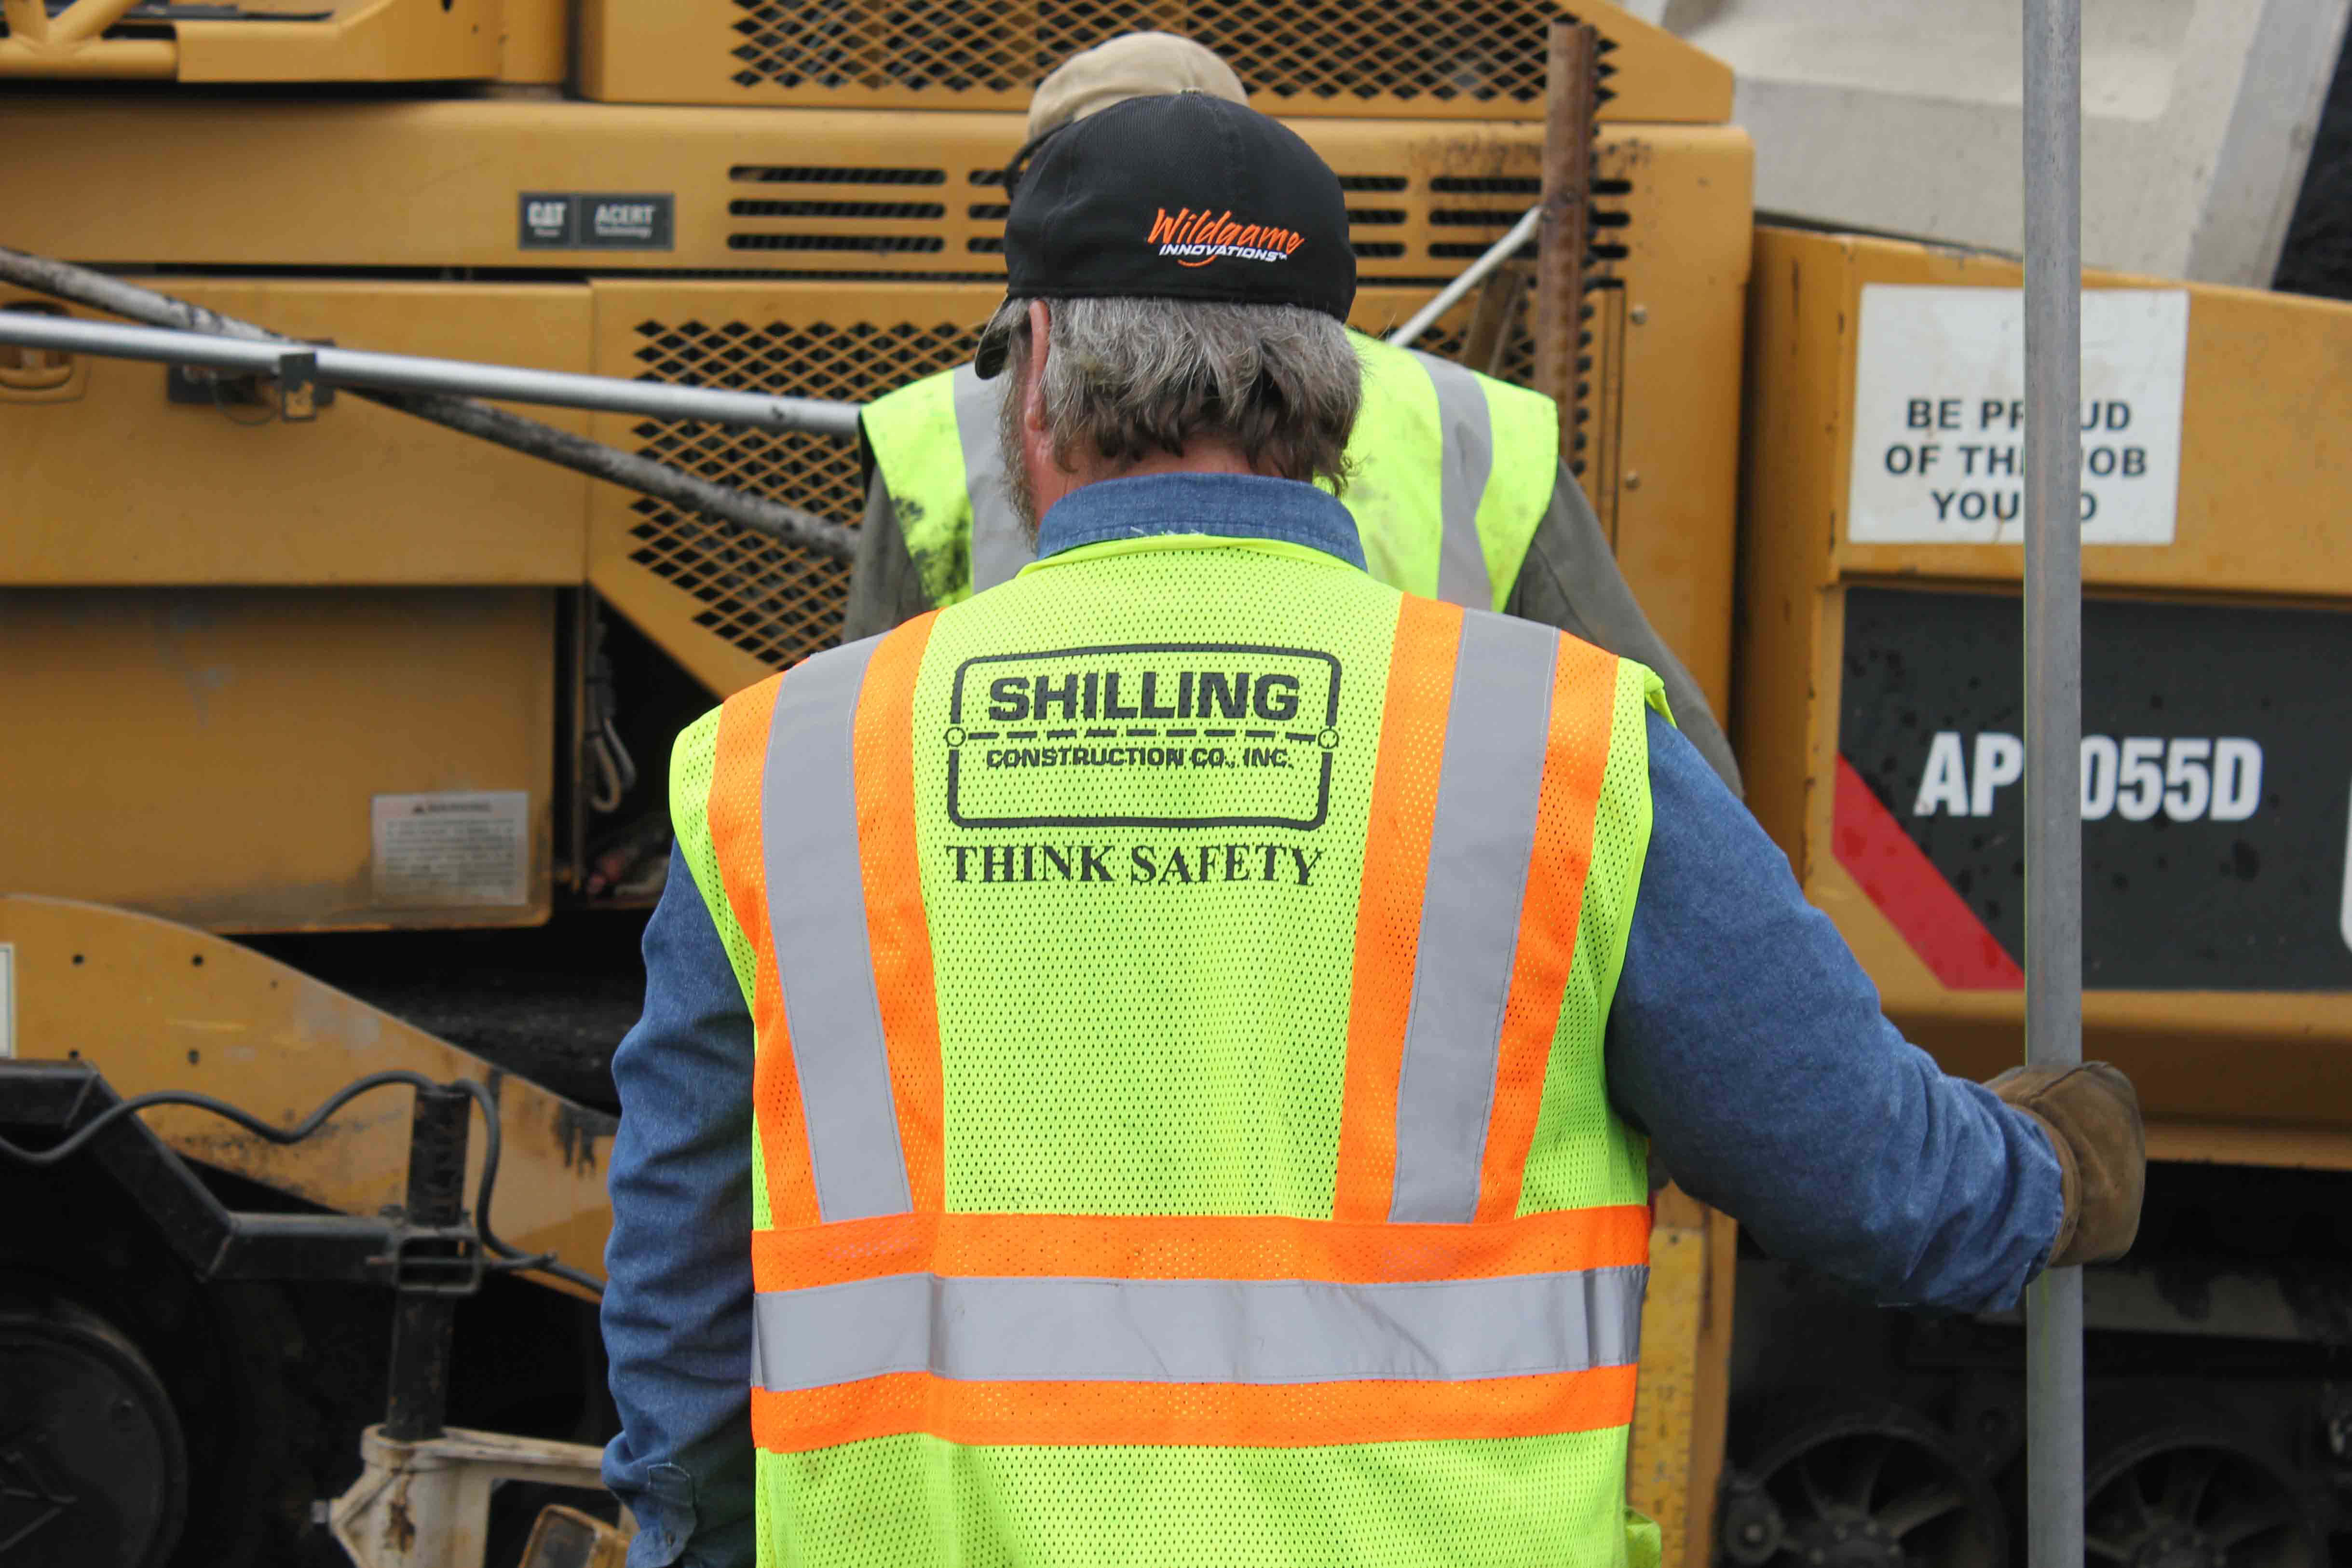 Shilling worker in his vest